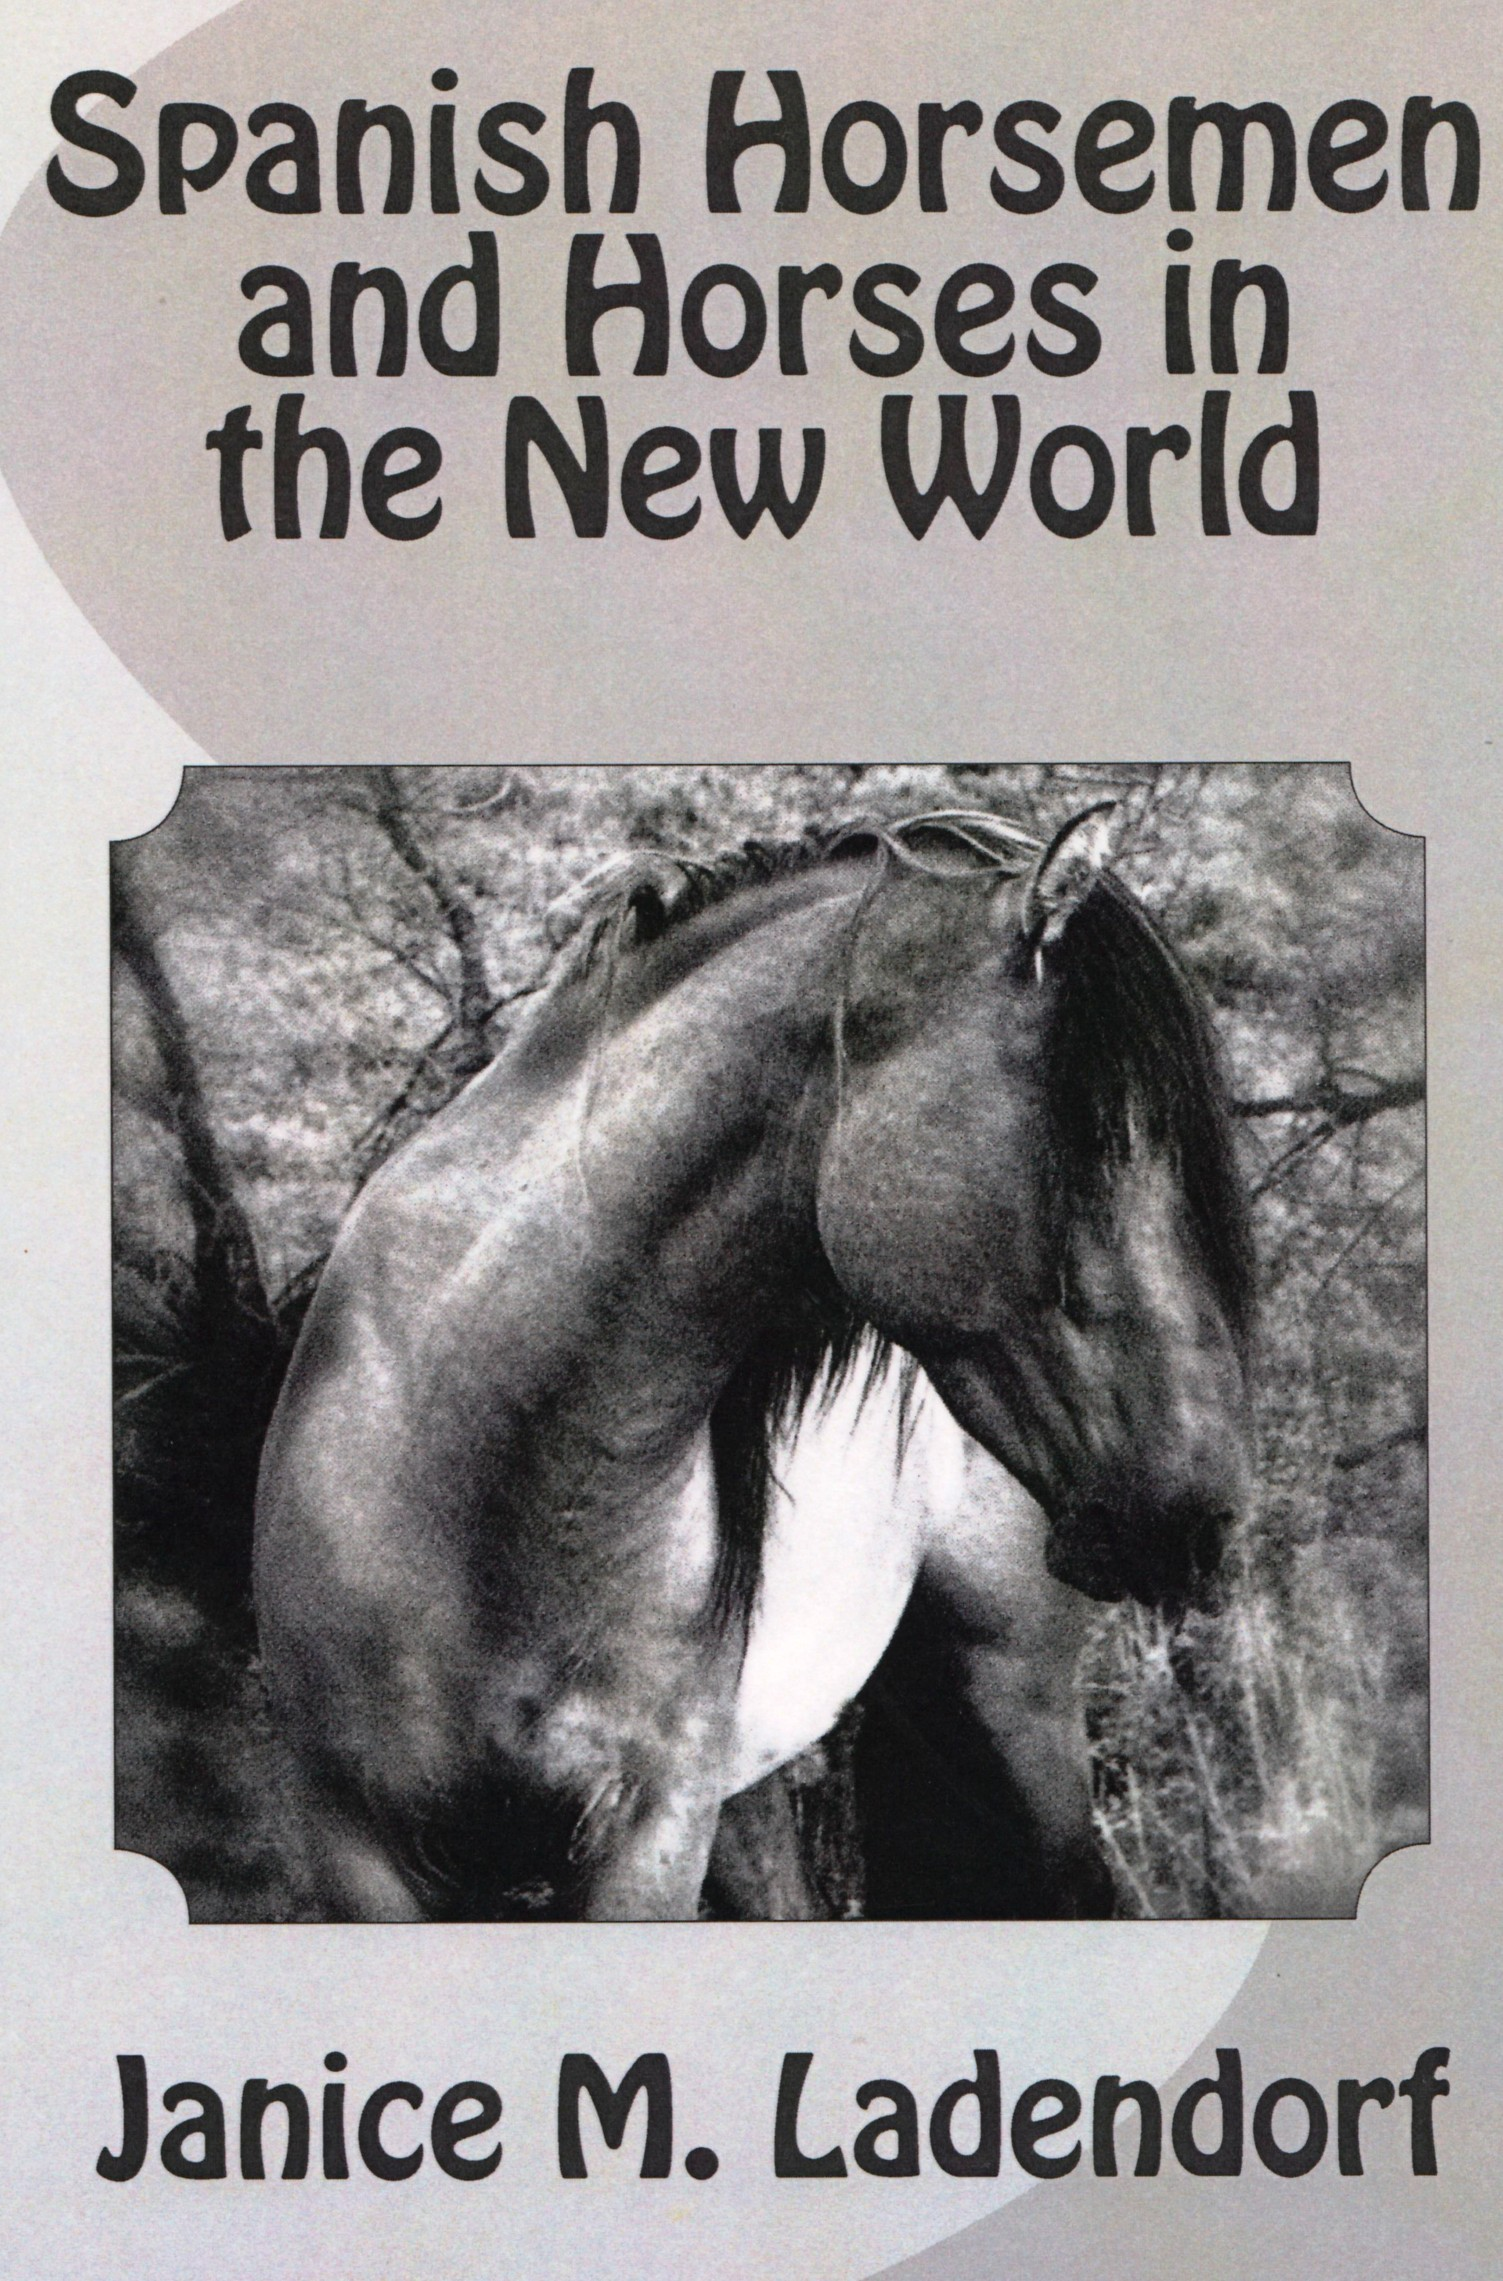 a history of horses in the new world